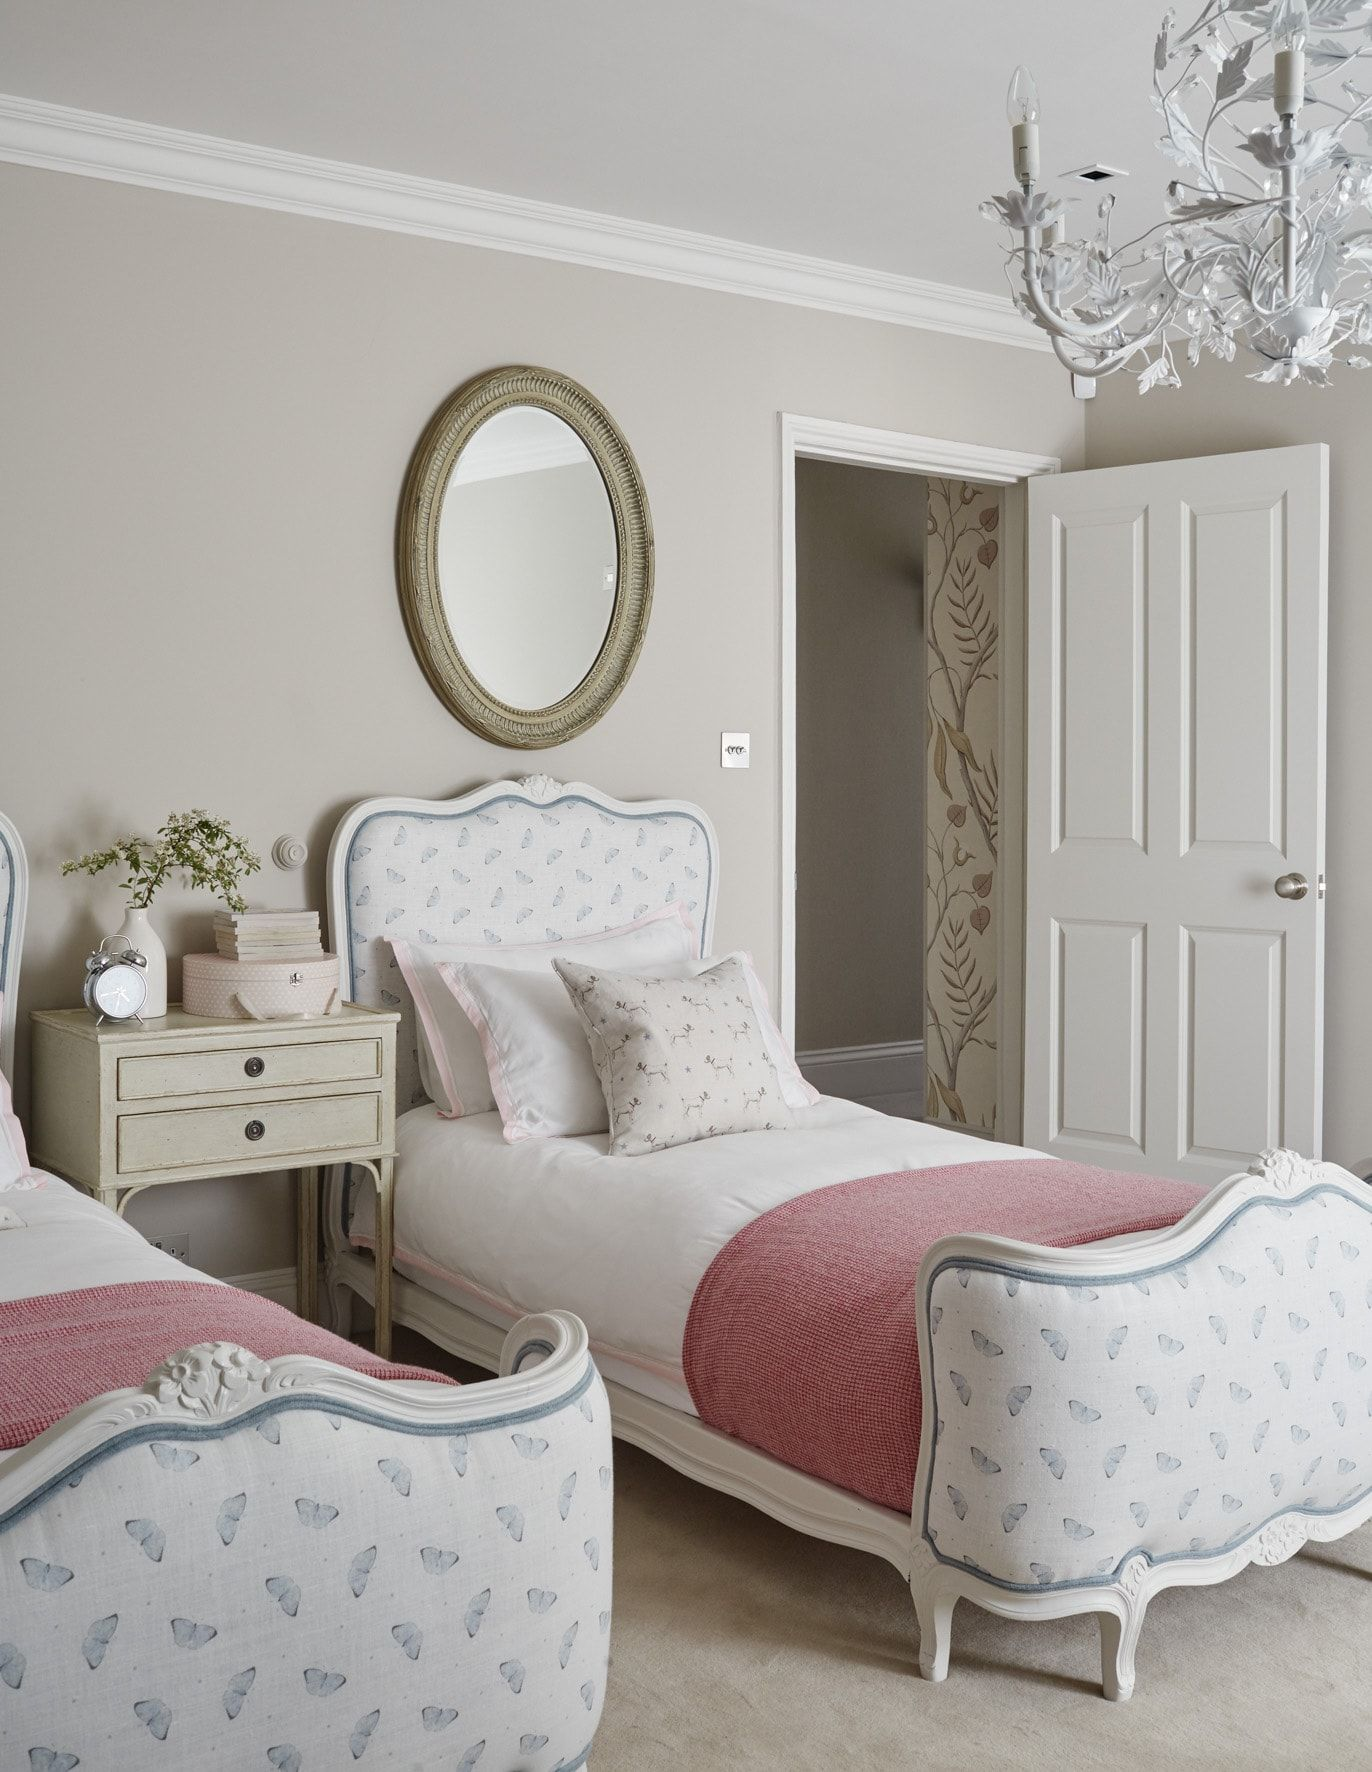 bedroom, white classi bed platform, cream wall, white chandelier, white side table with drawers